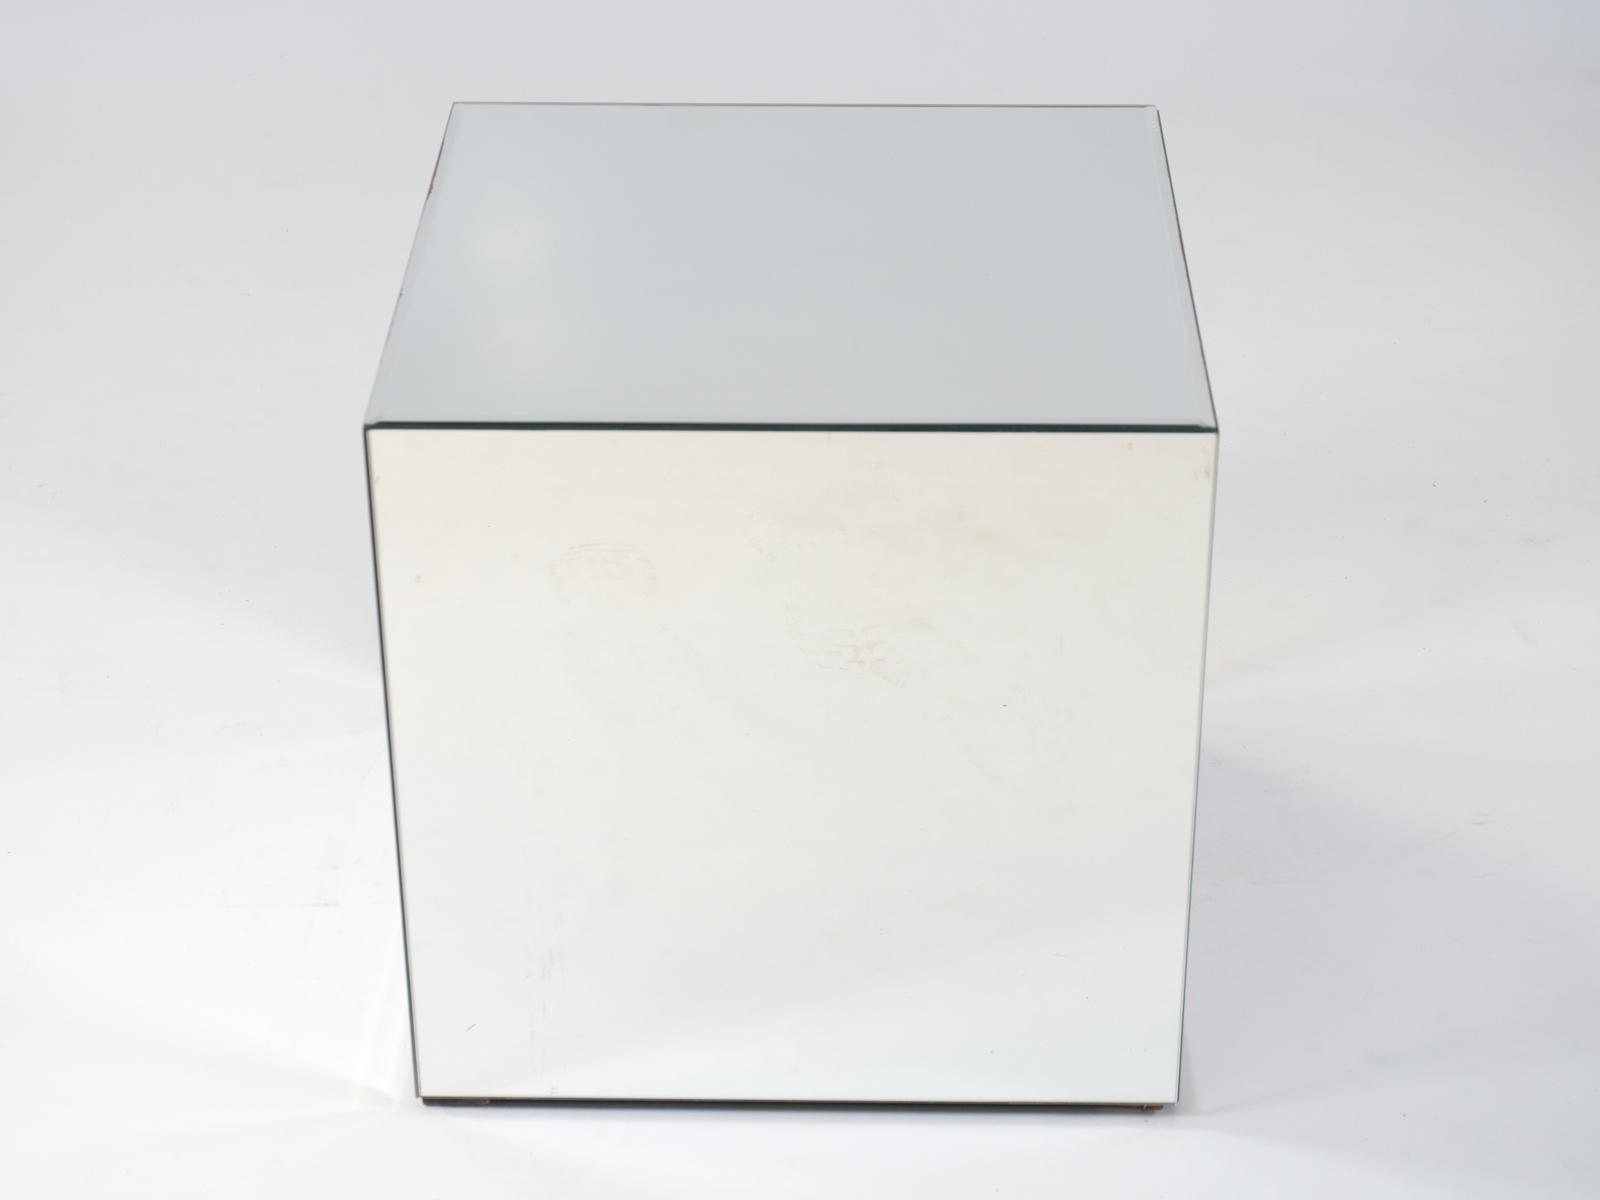 Elegant Mirror Cube Table To Hire